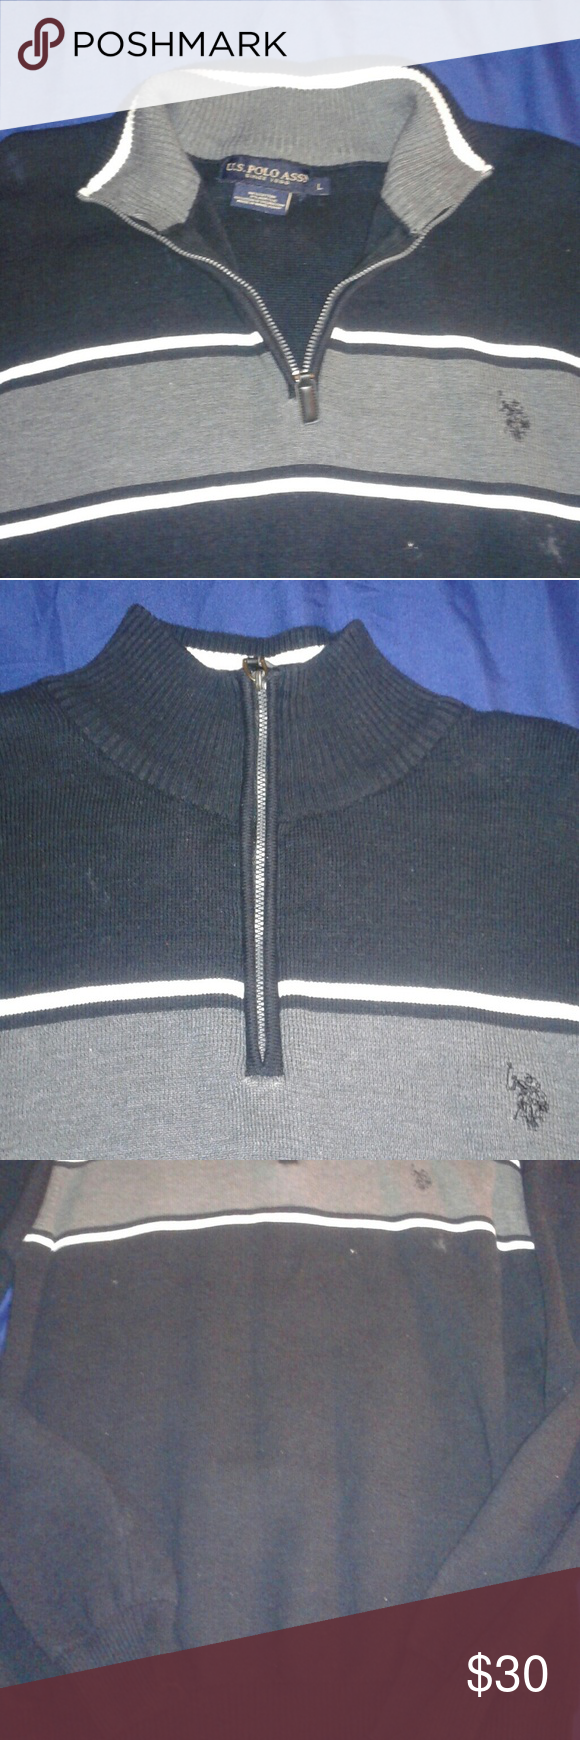 Polo sweater V-neck zipper, black with white and gray stripes U.S. Polo Assn. Sweaters V-Neck